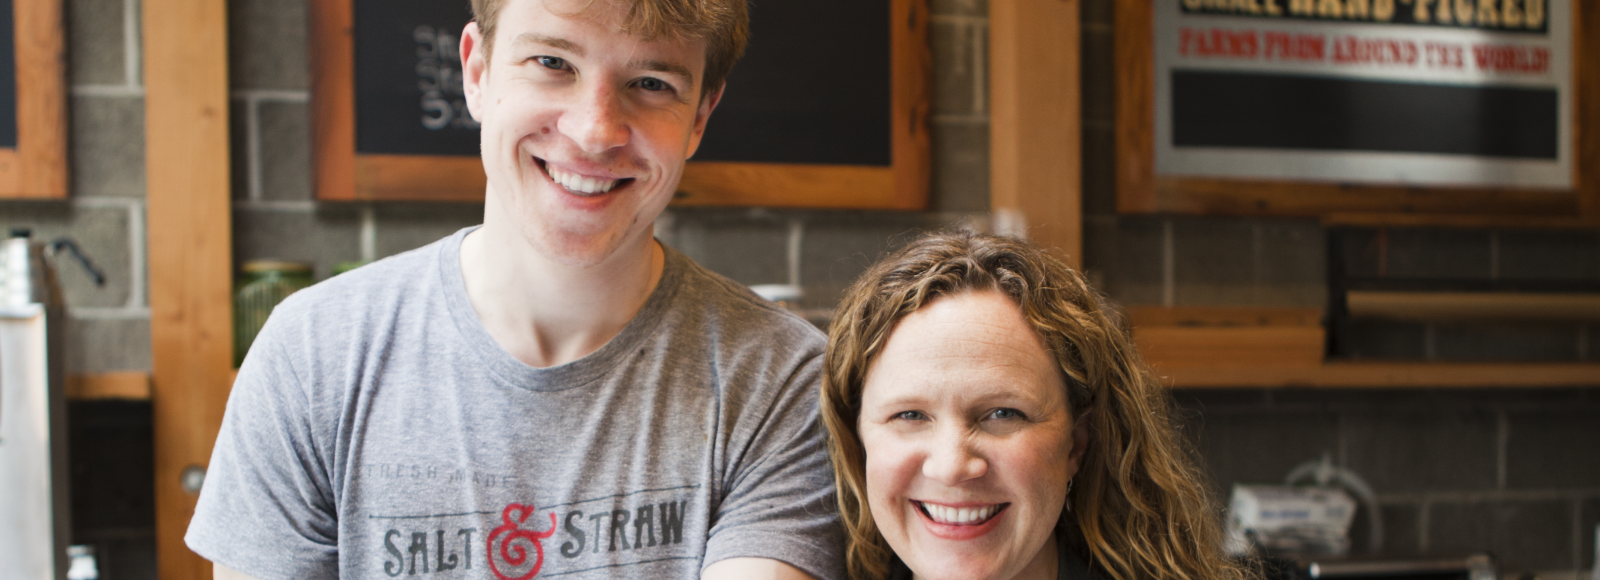 Kim & Tyler Malek of Salt & Straw Ice Cream holding ice cream cones